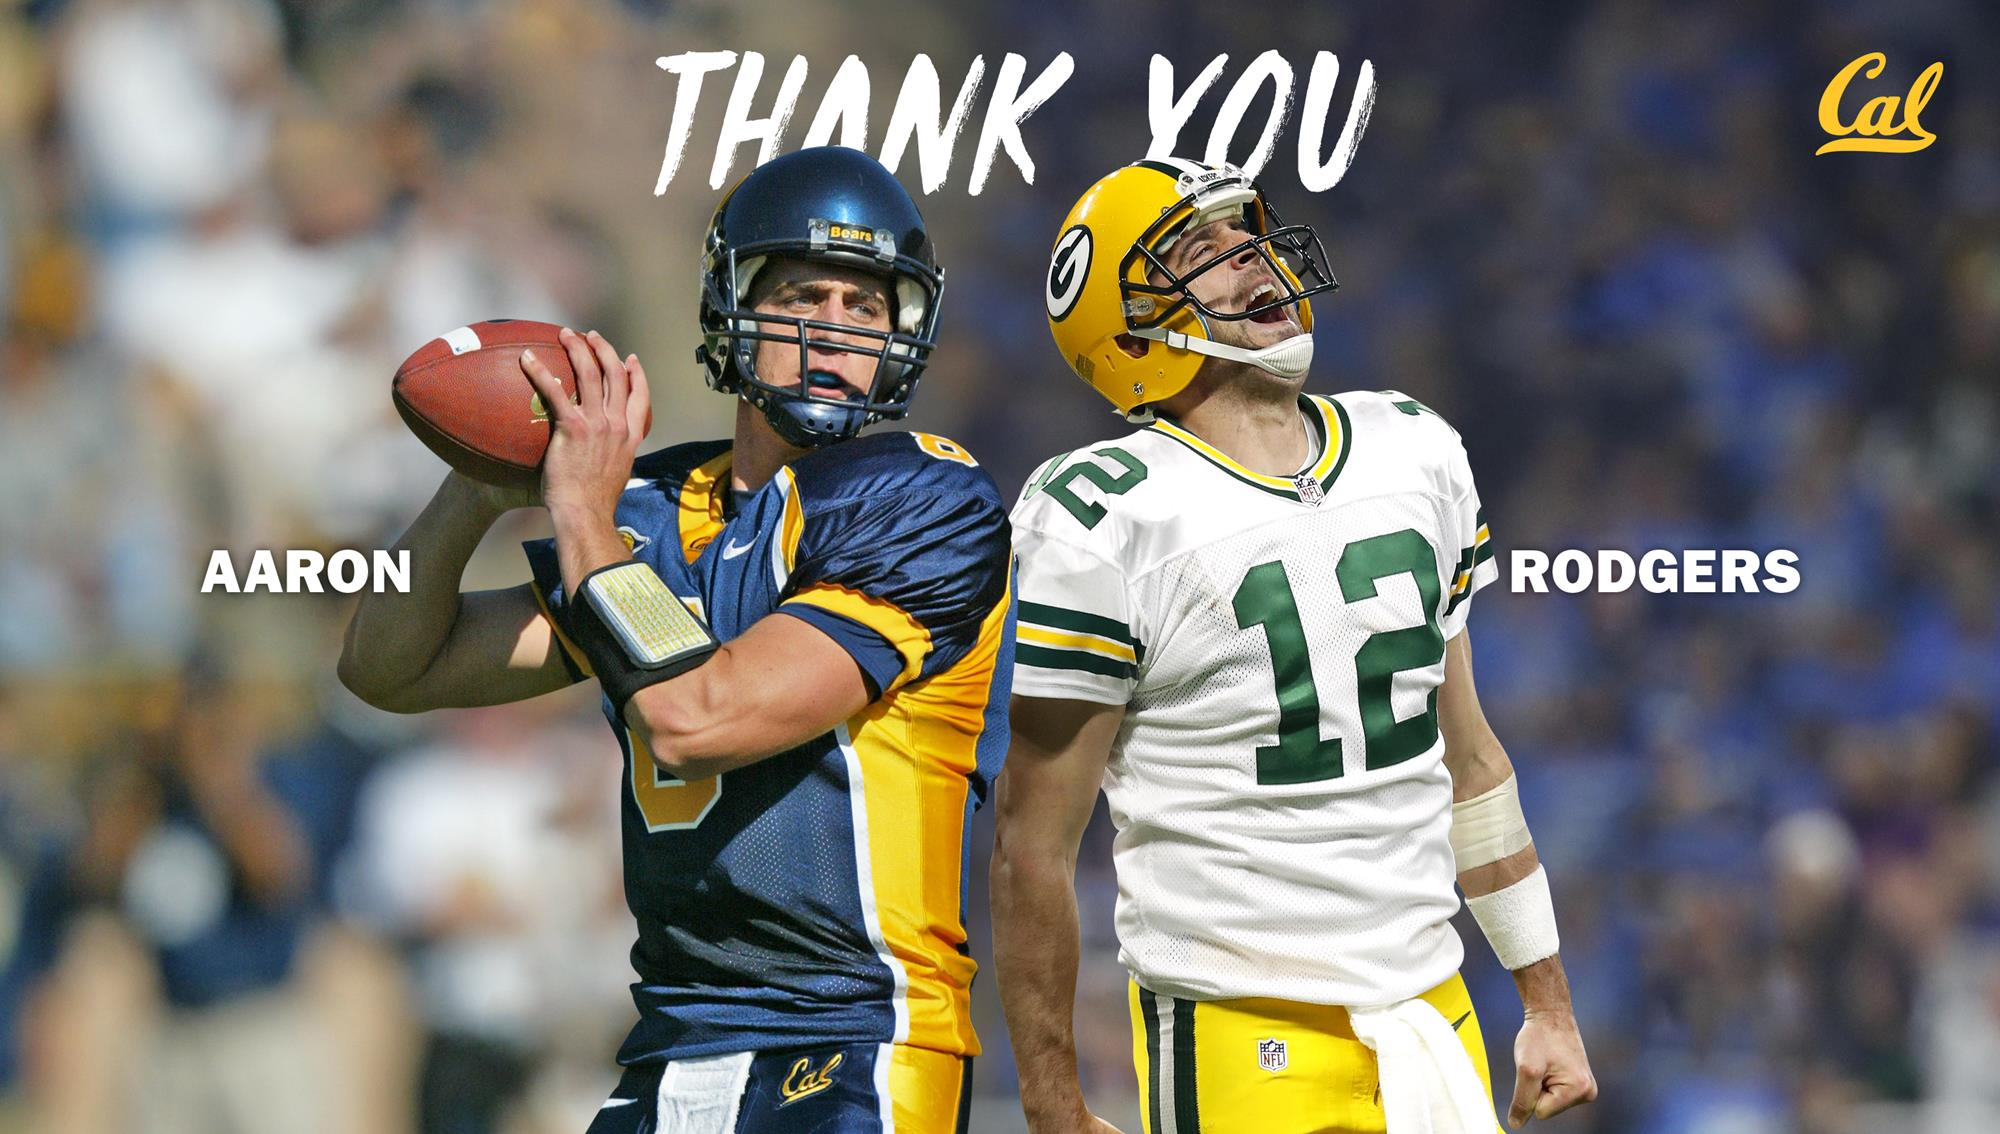 Aaron Rodgers Makes Seven Figure Gift To Cal Athletics University Of California Golden Bears Athletics